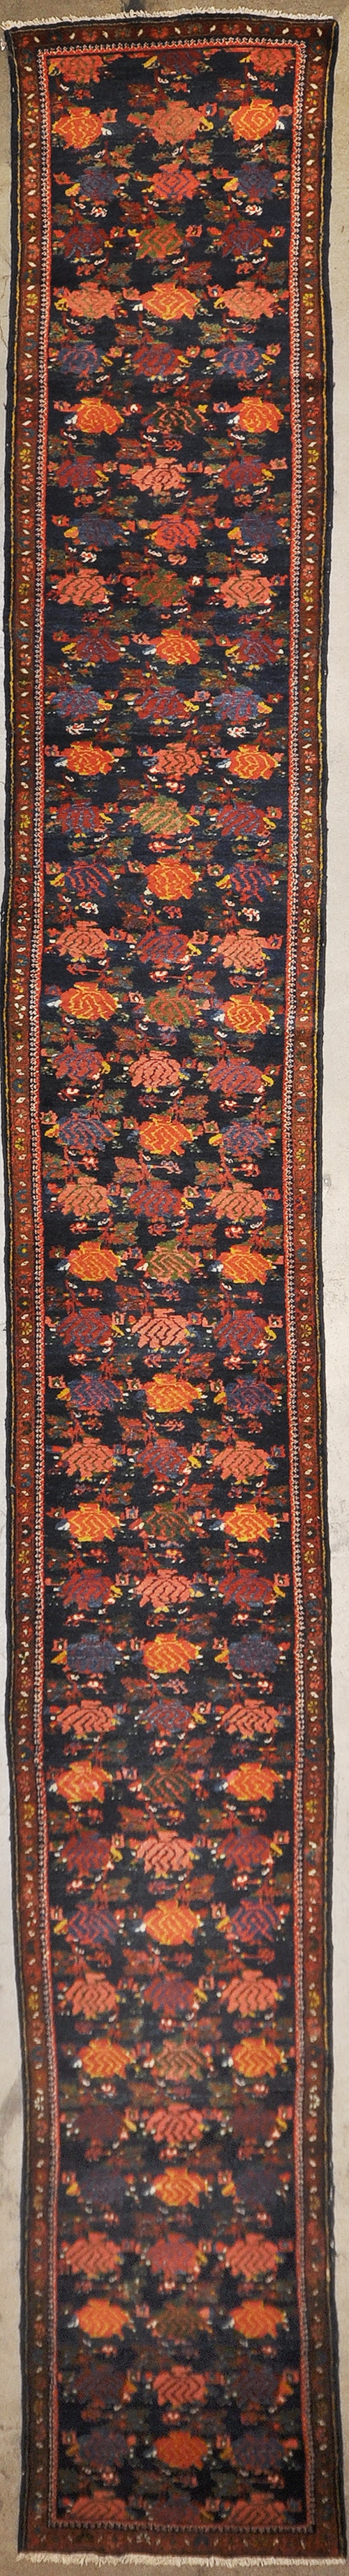 Antique Tribal Runner rugs and more oriental carpet 33677-